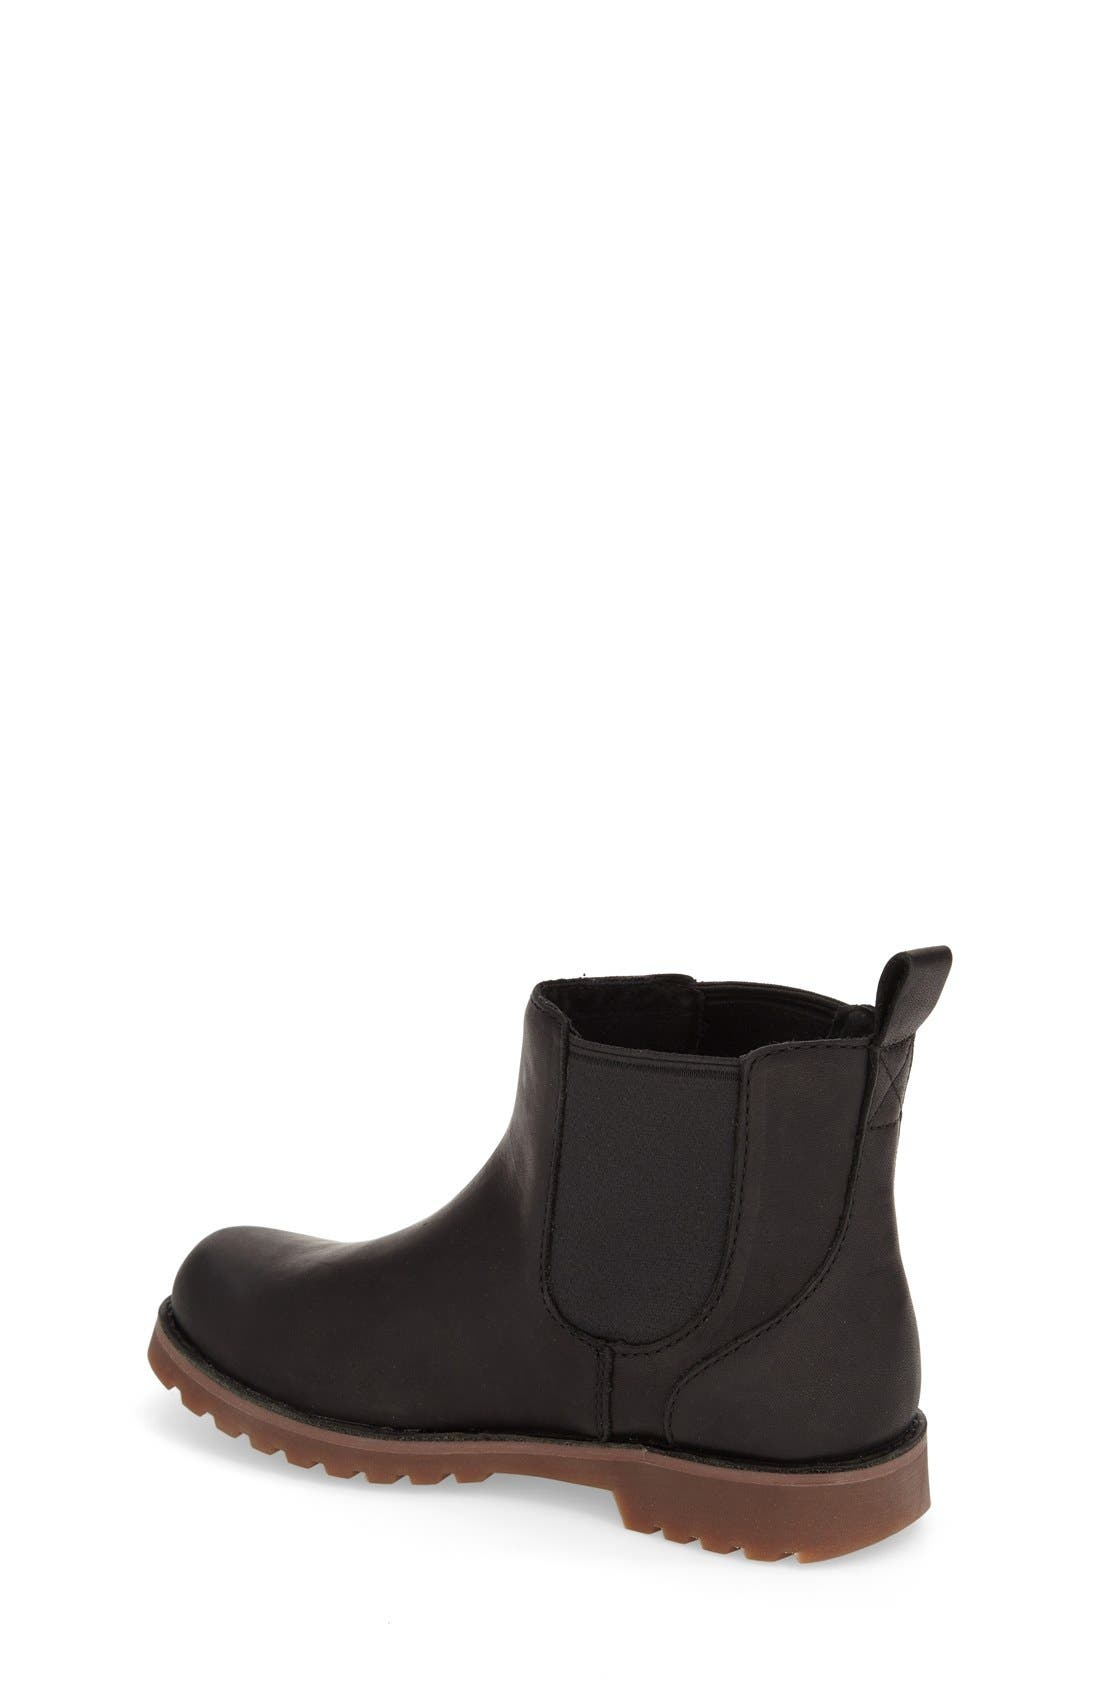 Alternate Image 2  - UGG® Callum Water Resistant Chelsea Boot (Walker, Toddler, Little Kid & Big Kid)